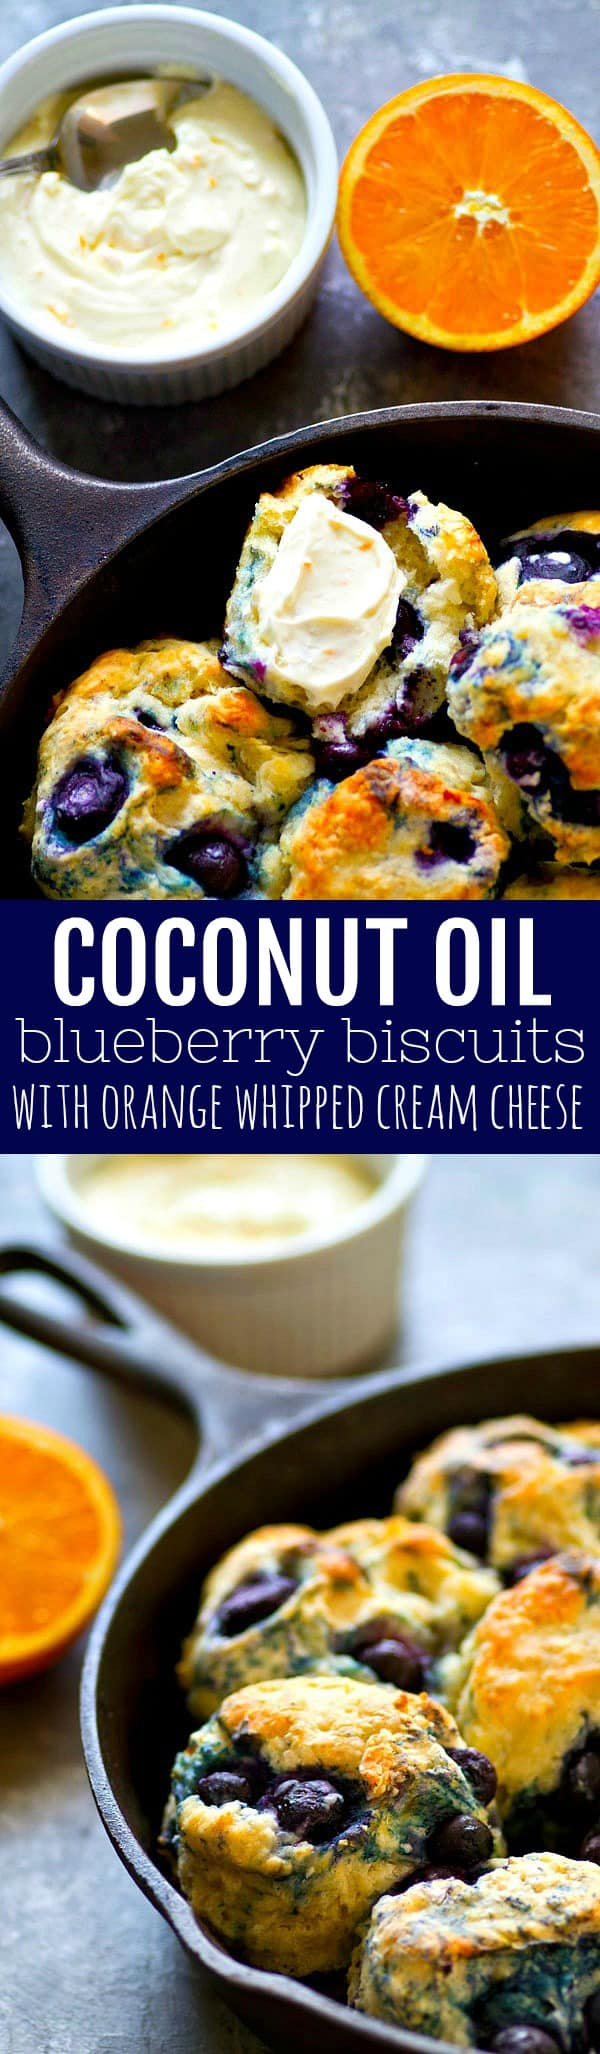 Coconut oil blueberry biscuits are tender, flaky, and exploding with juicy blueberries! Slather them up with orange whipped cream cheese hot out of the oven for the ultimate breakfast!